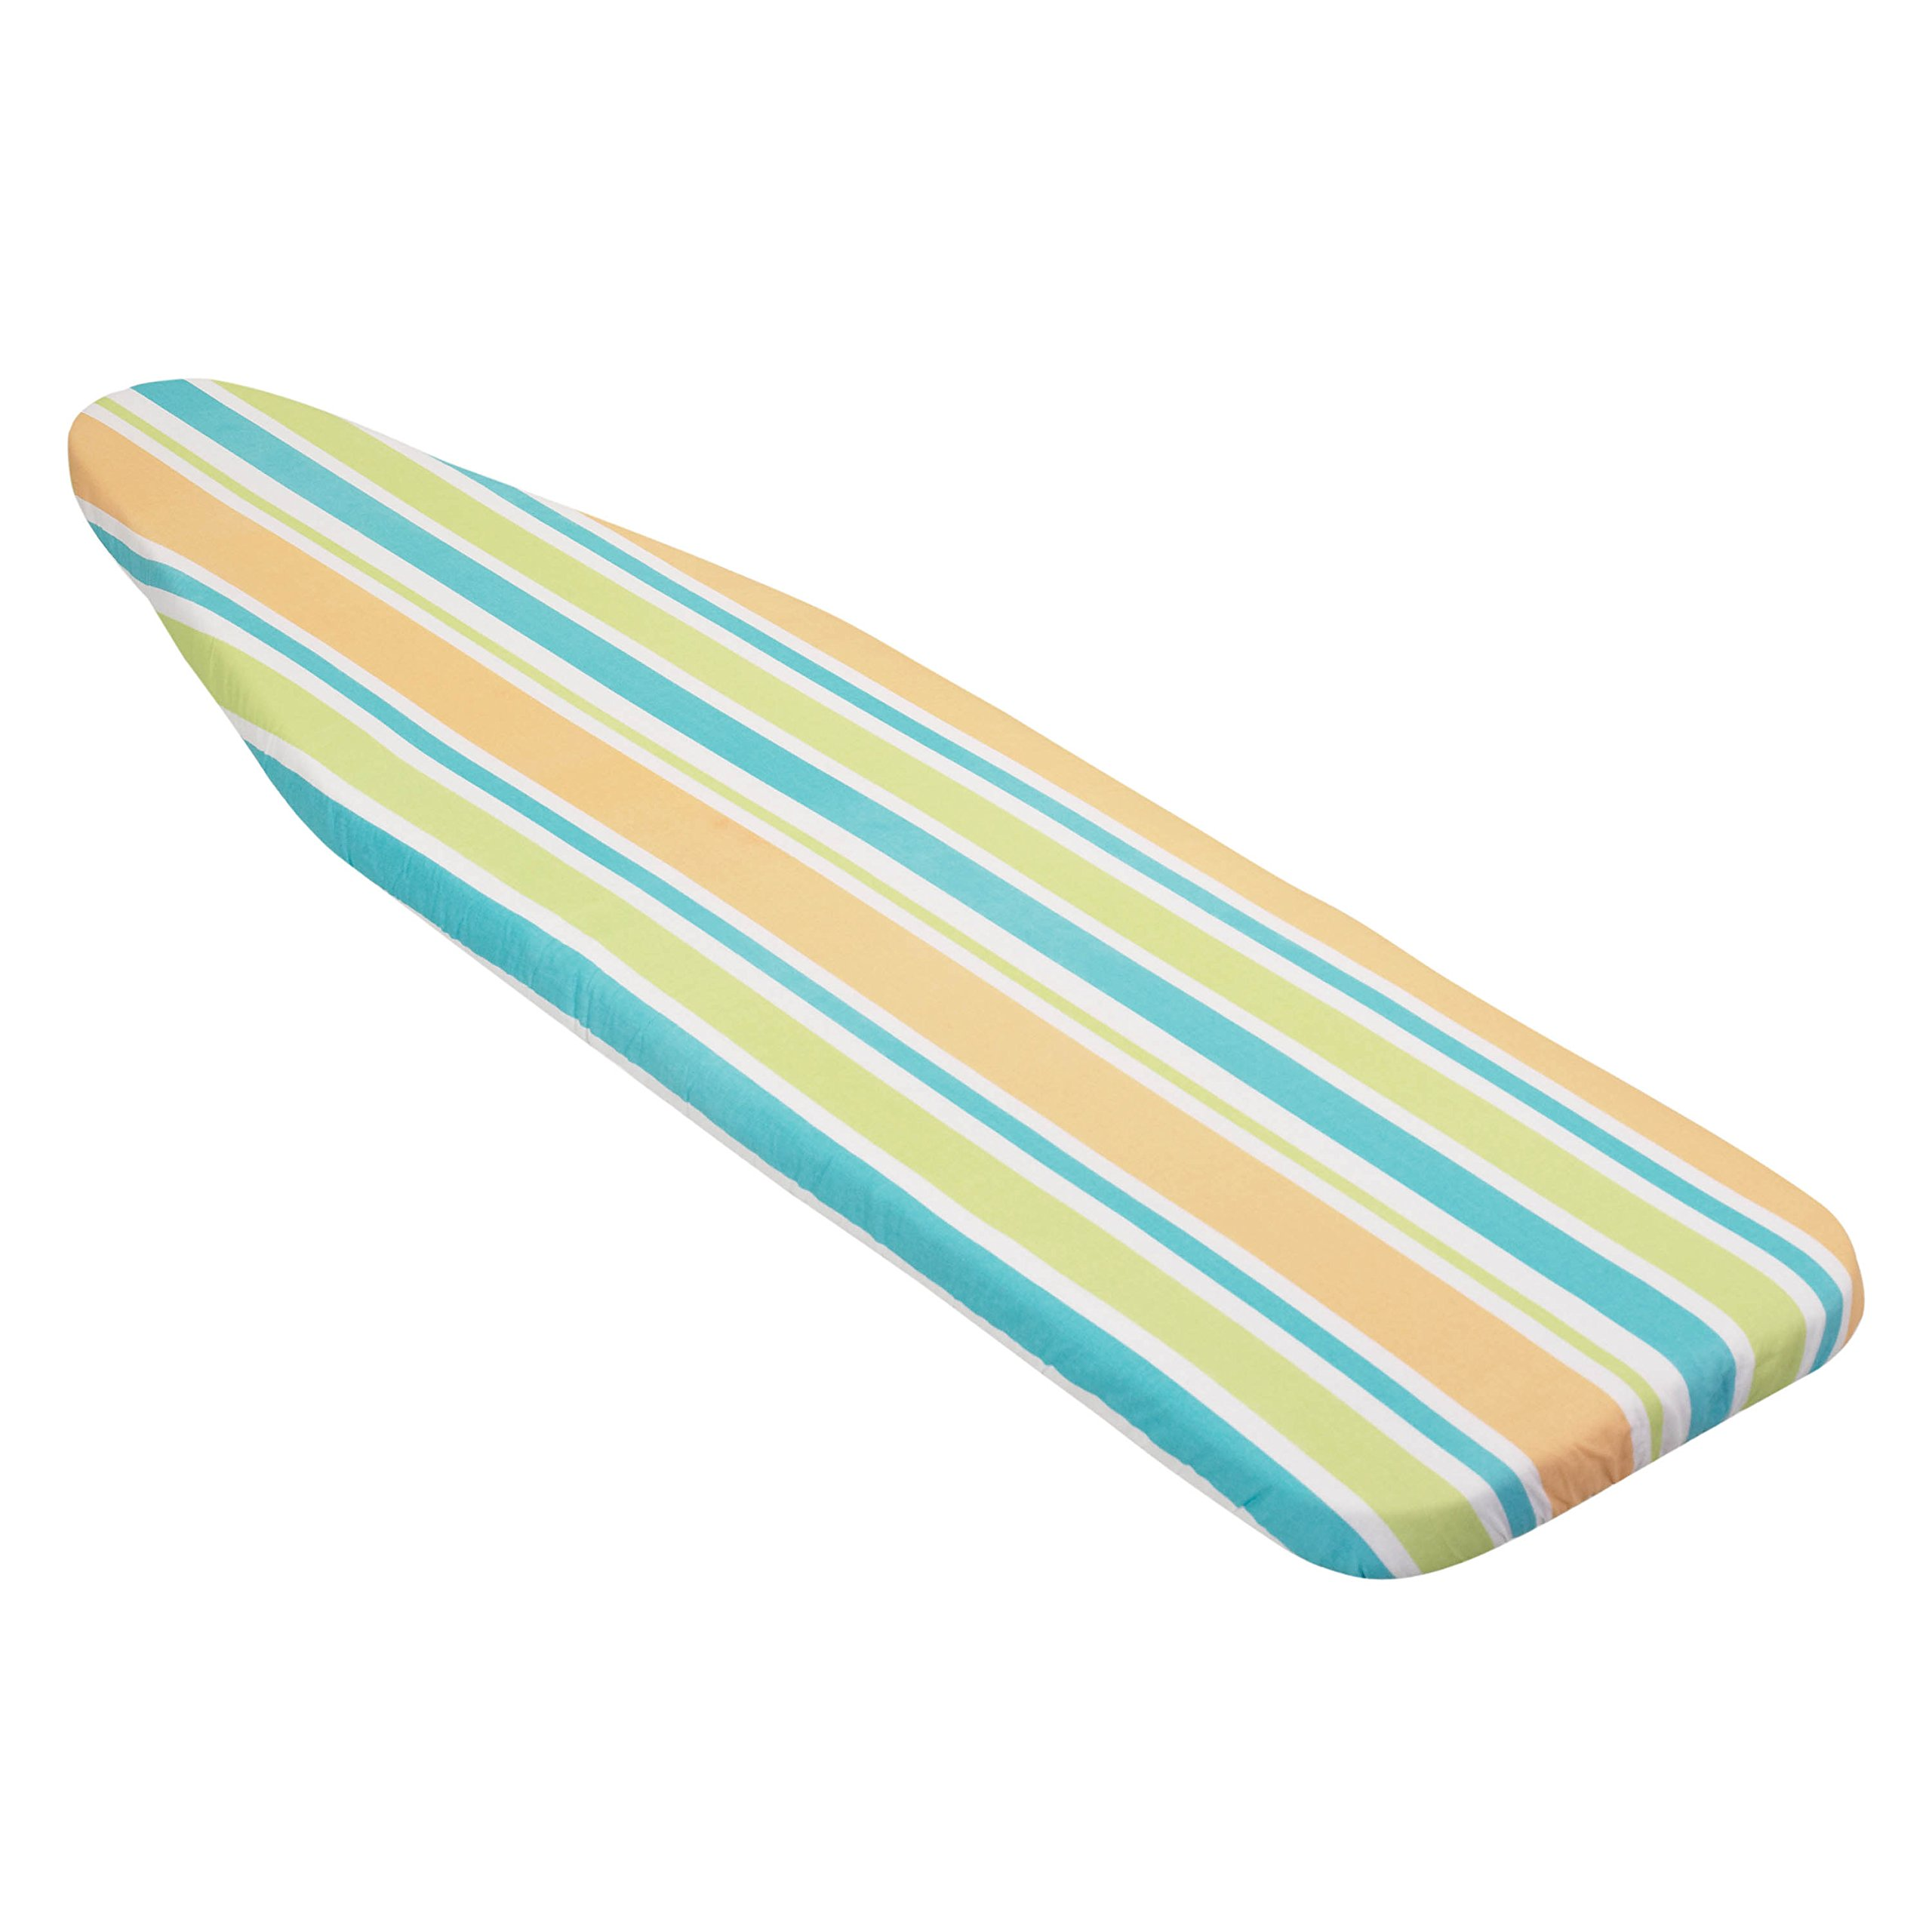 Honey-Can-Do IBC-01895 Standard Ironing Board Cover, Stripes